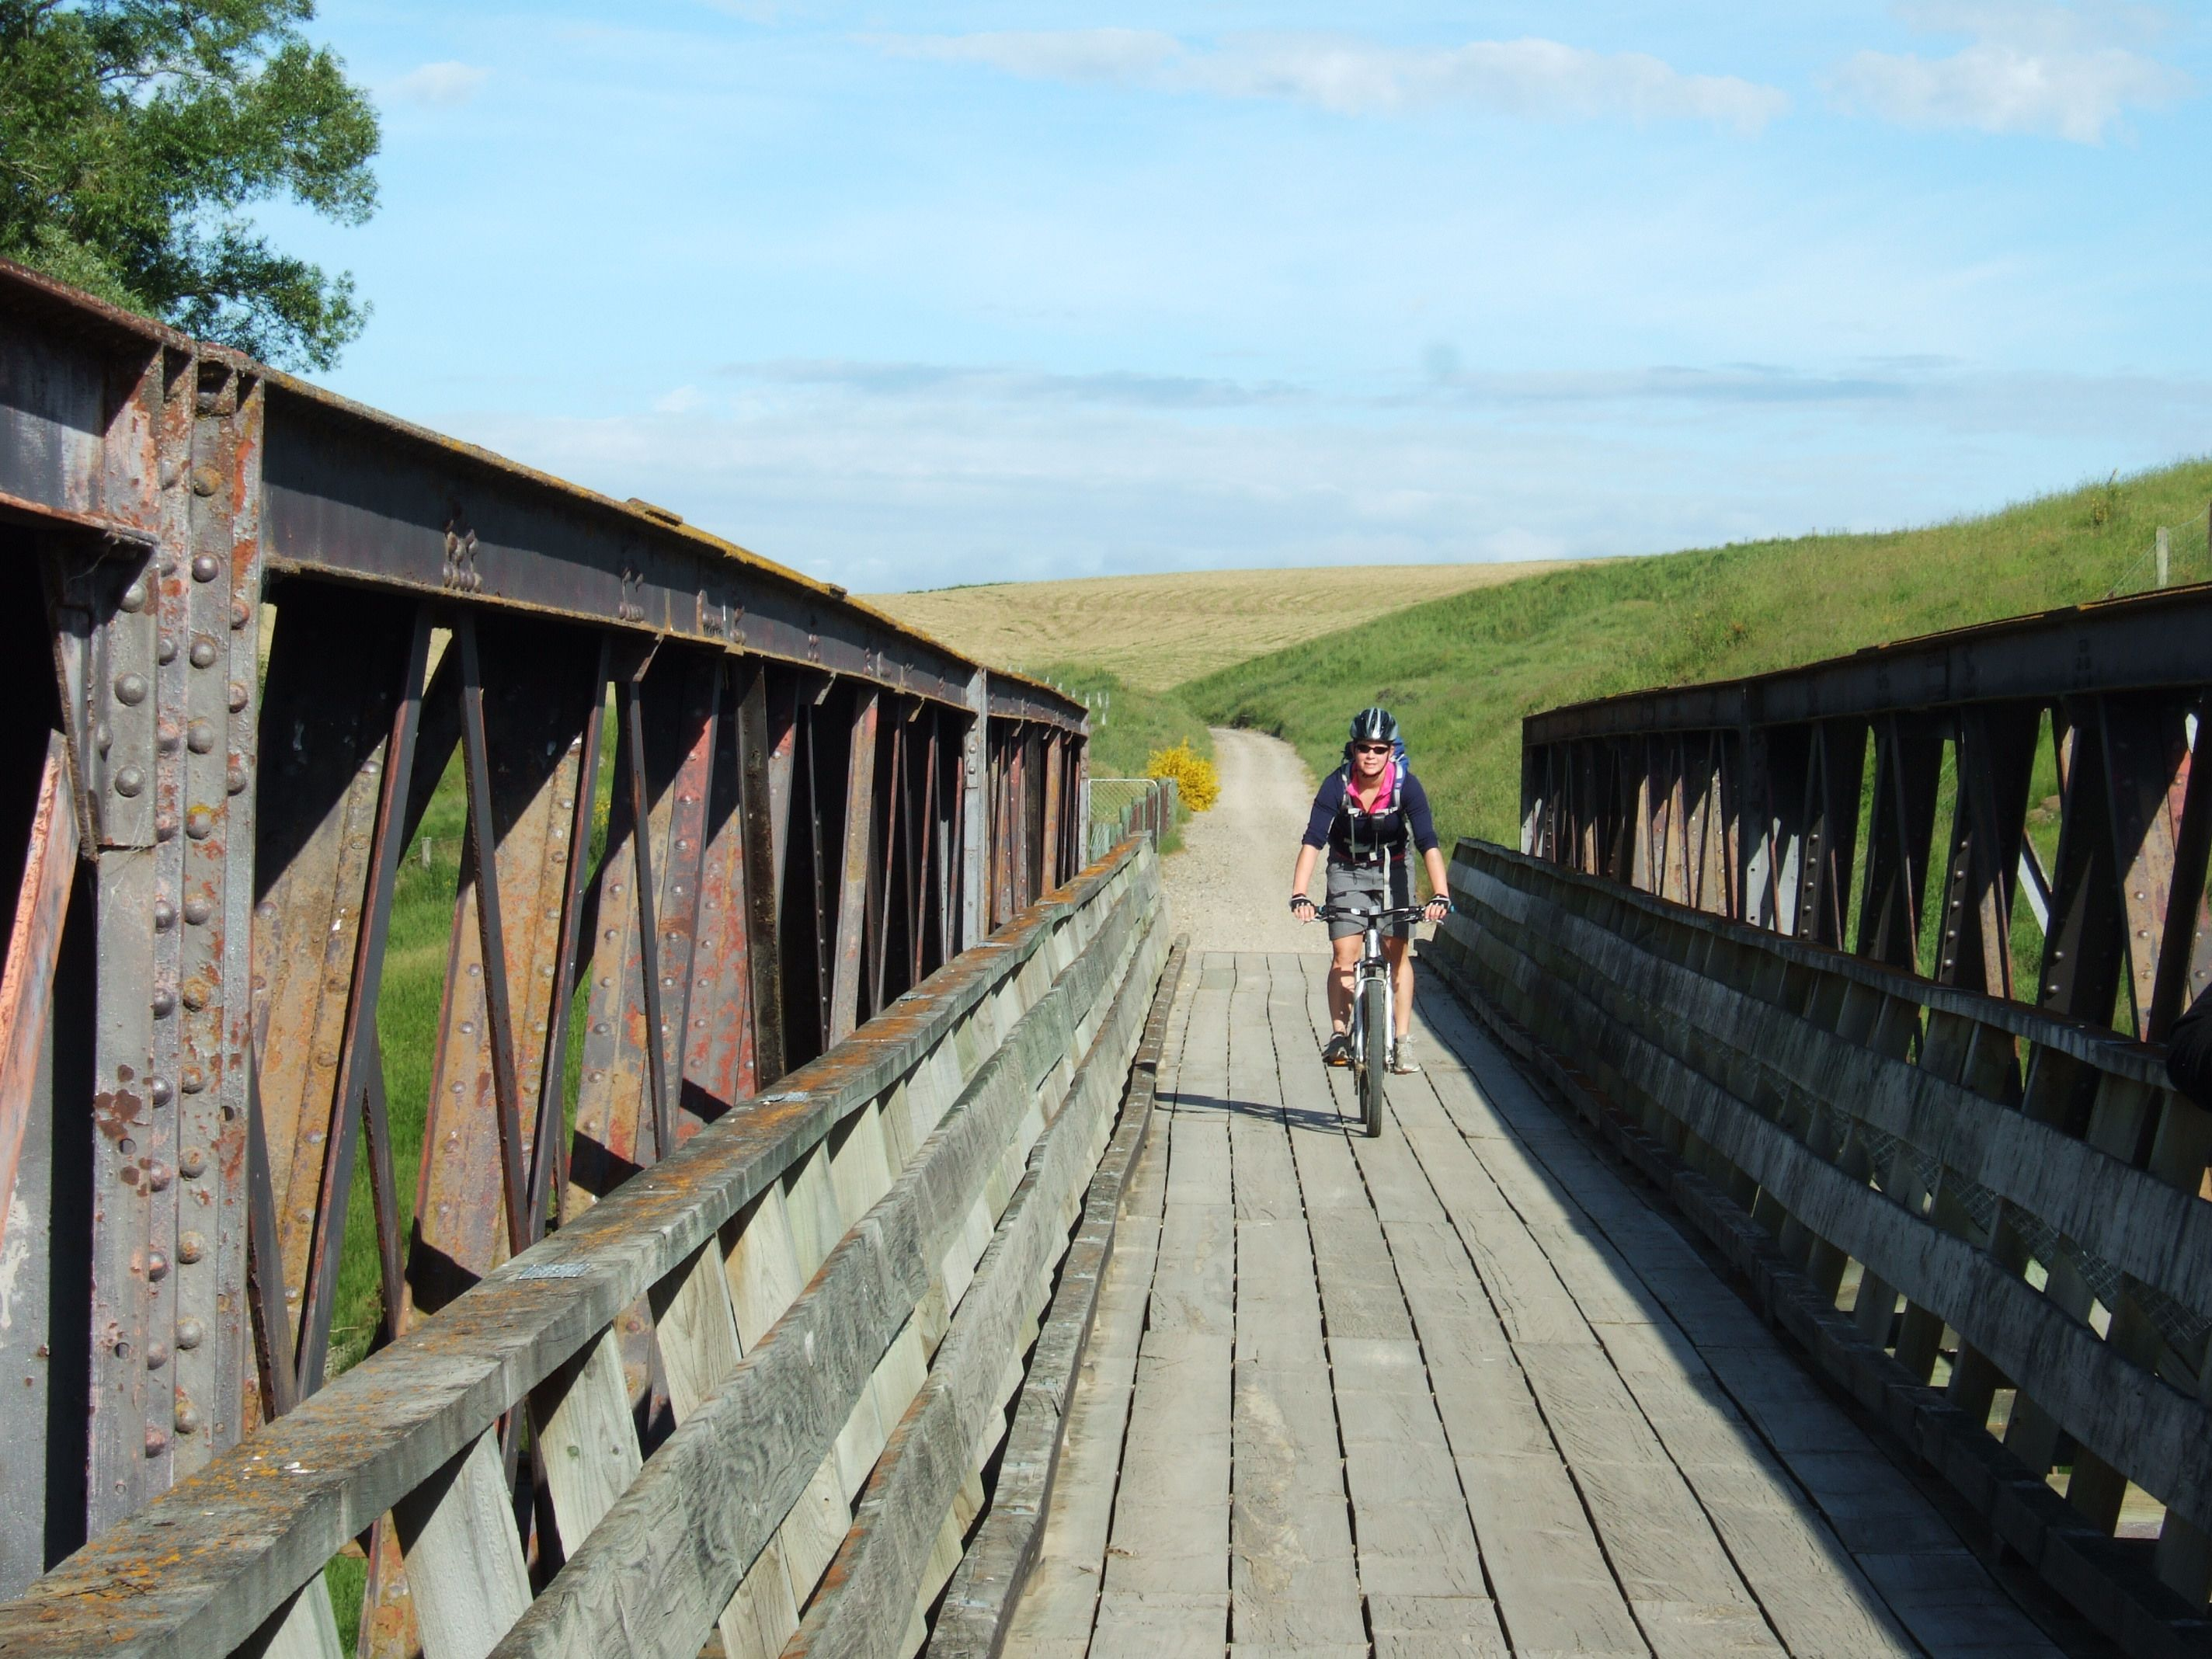 If cycling isn't your thing, you can always walk the Otago Central Rail Trail, either the entire 150km or shorter sections for a taste.